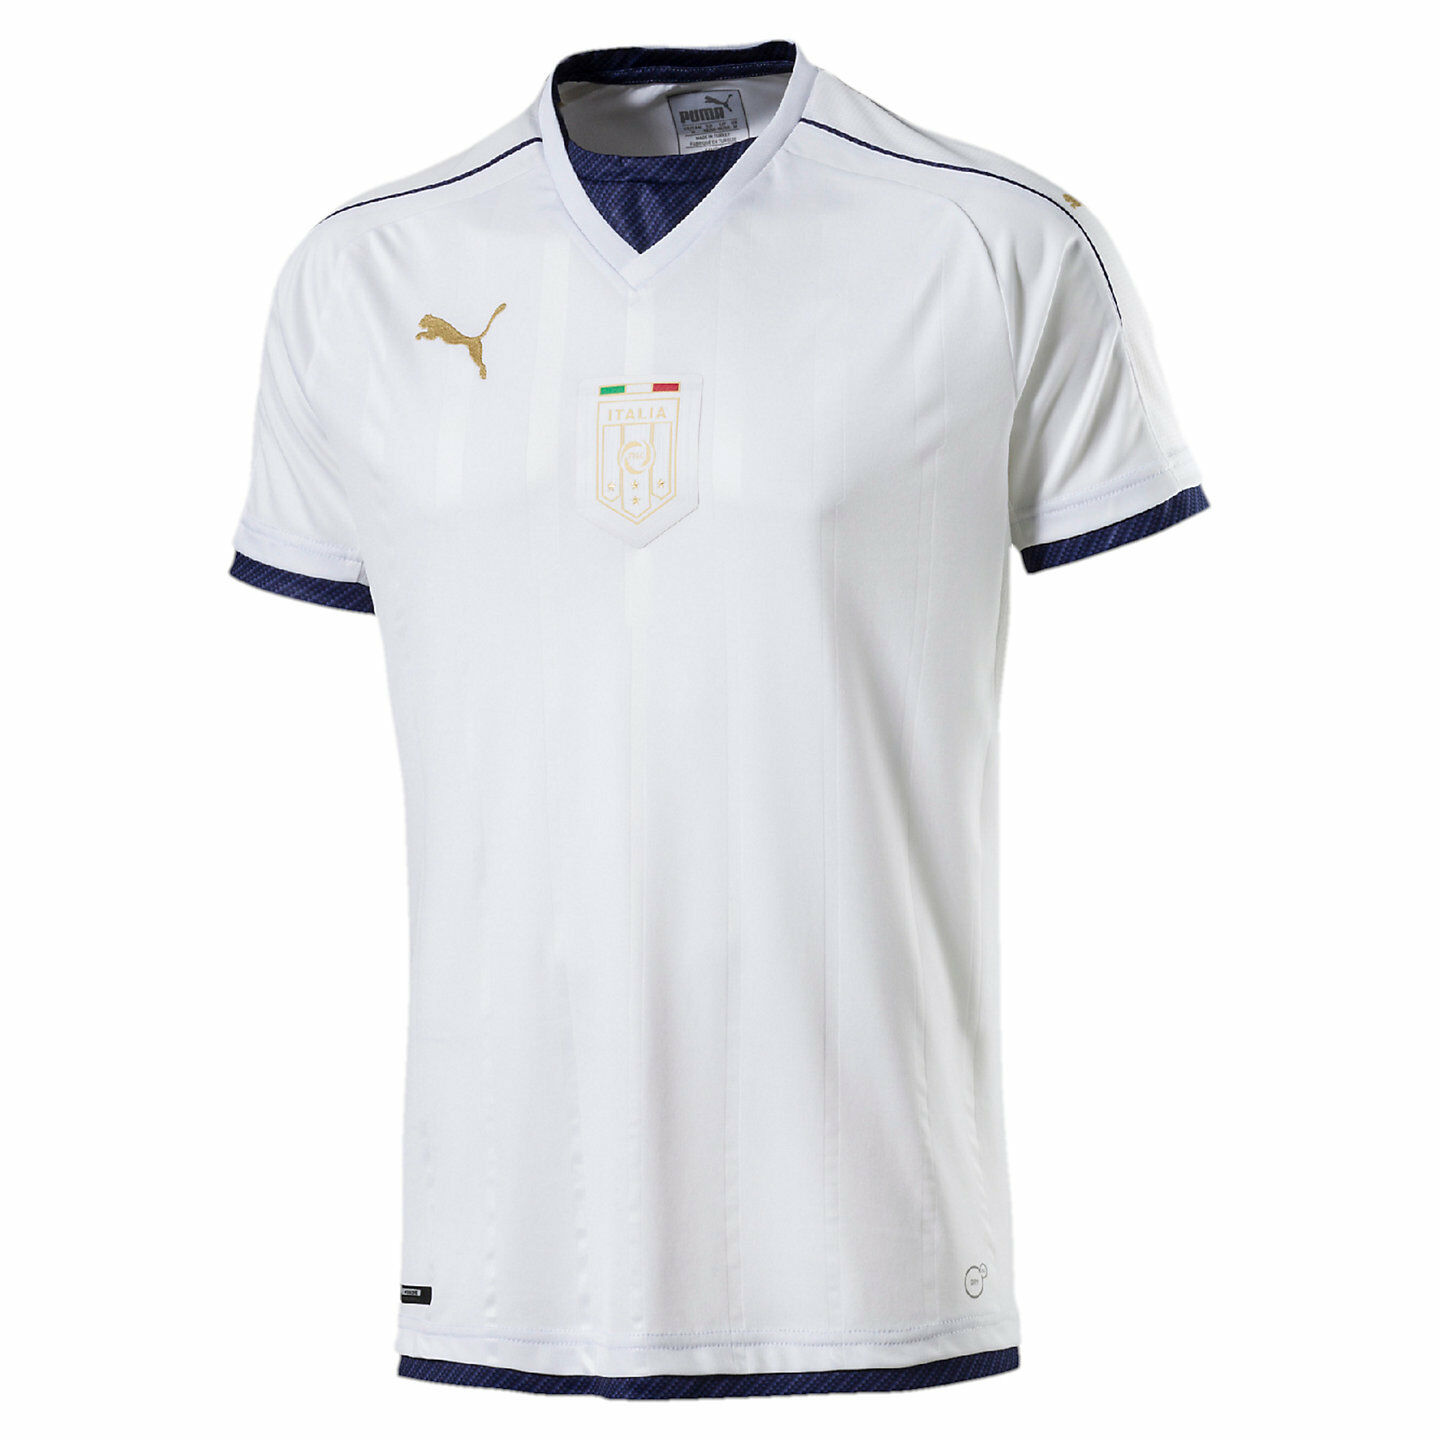 Puma  - Italia  2016 Tribute DryCell Away Soccer Jersey Weiß / Navy / Gold